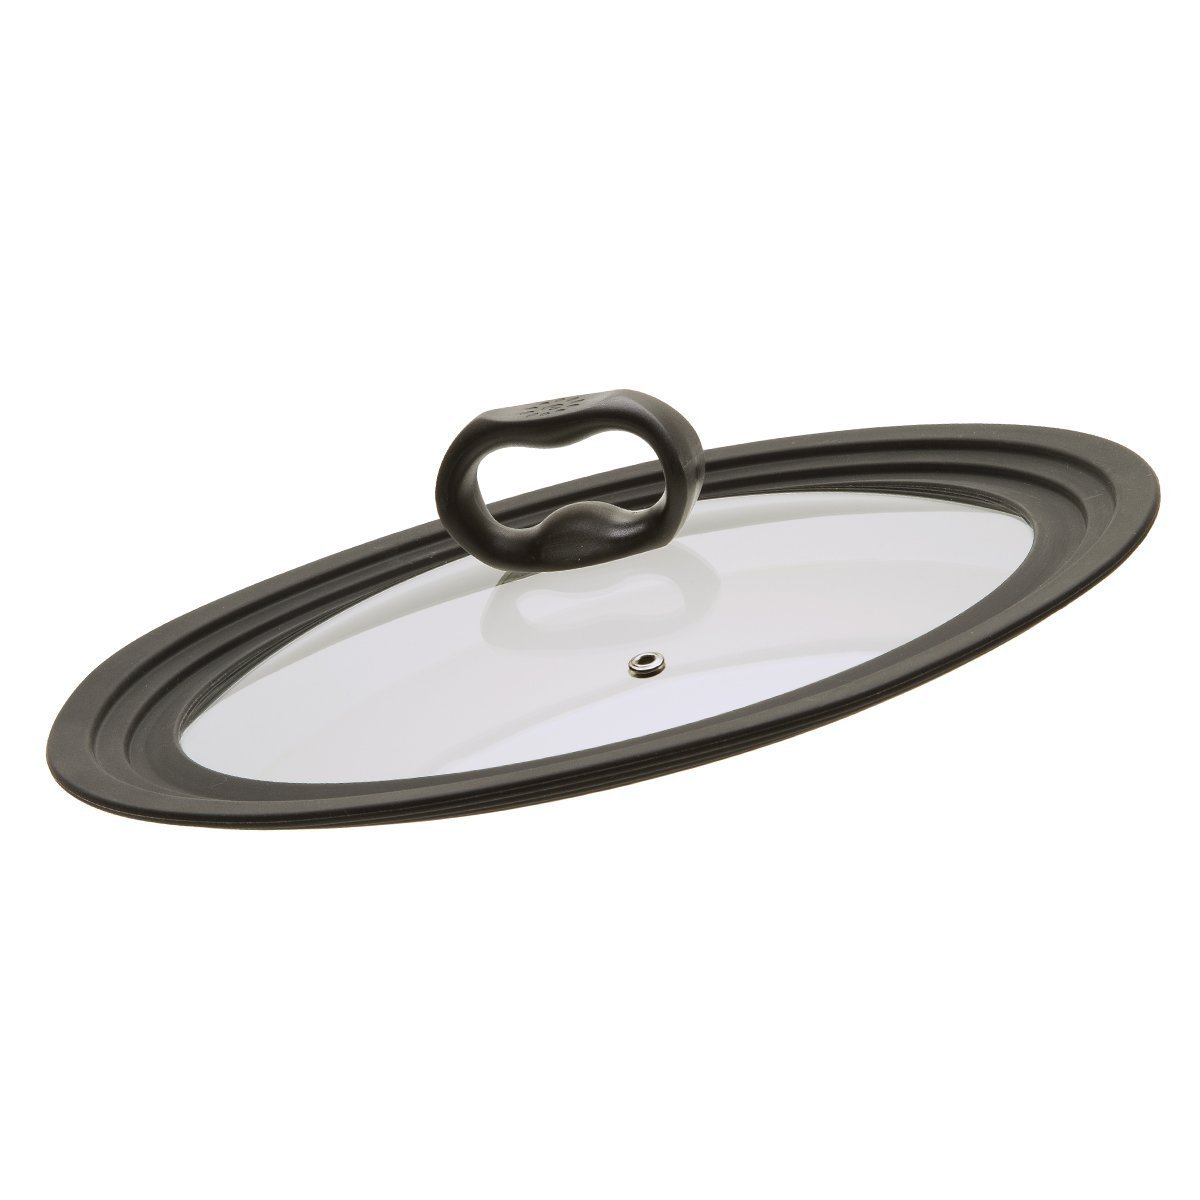 Ecolution Universal Lid for Pots and Pans, Vented Tempered Glass - Graduated Rims fit 9.5 inch, 10 inch, 12 inch Cookware